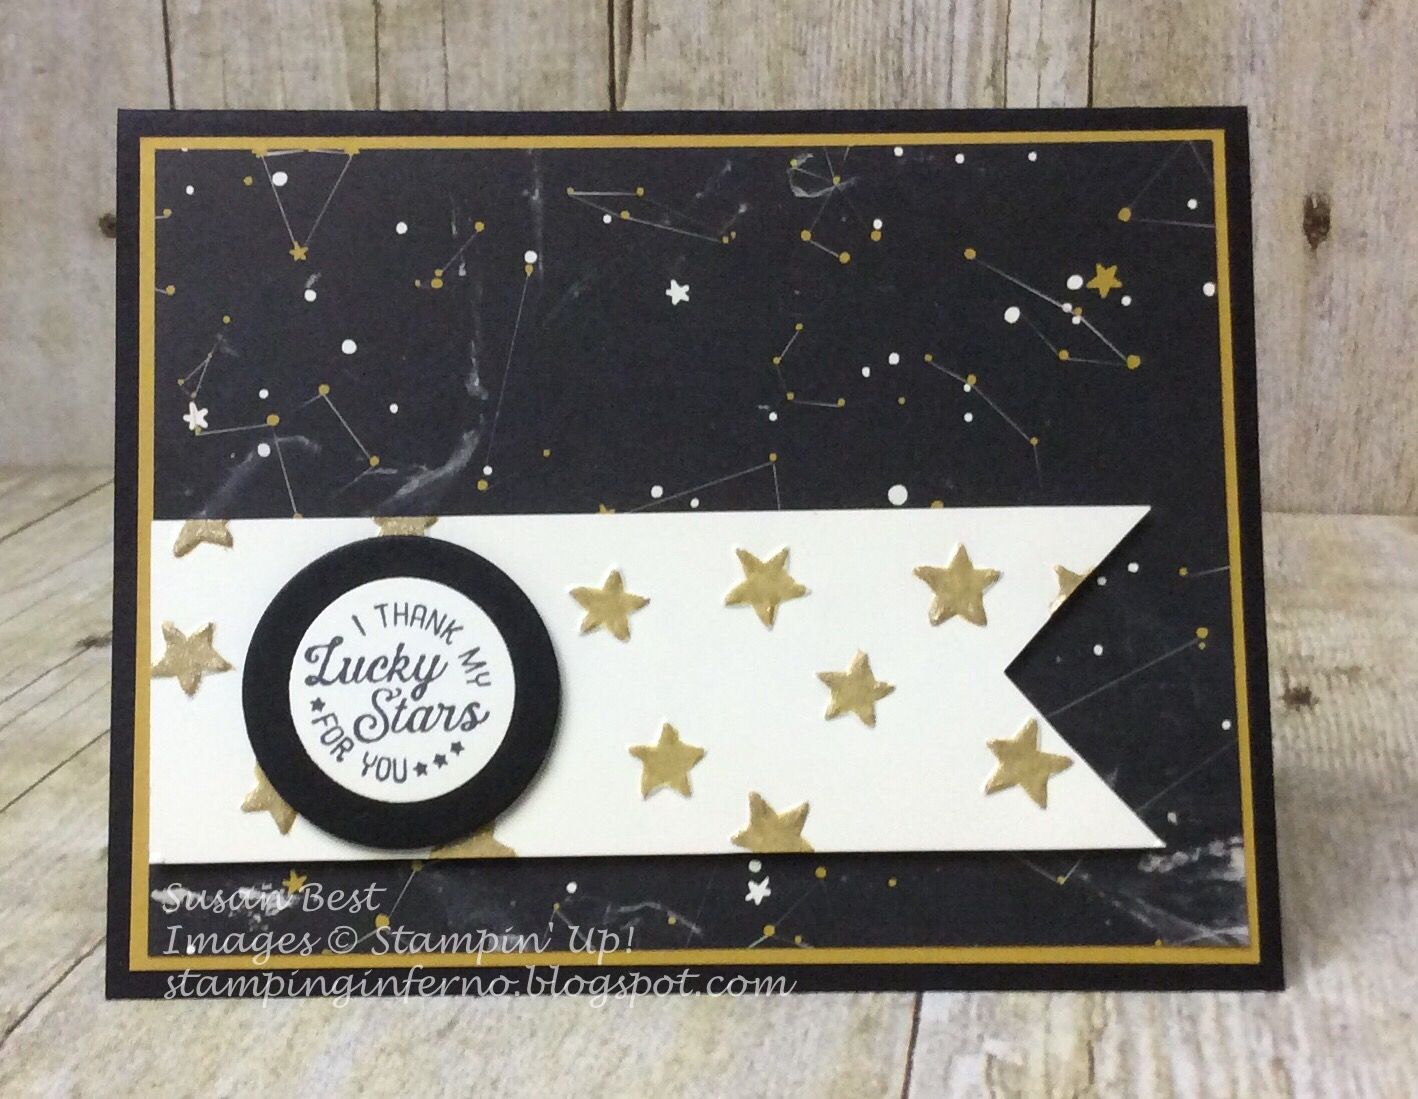 Stampin' Up! Going Global, What Will You Stamp?, WWYS, stampinginferno